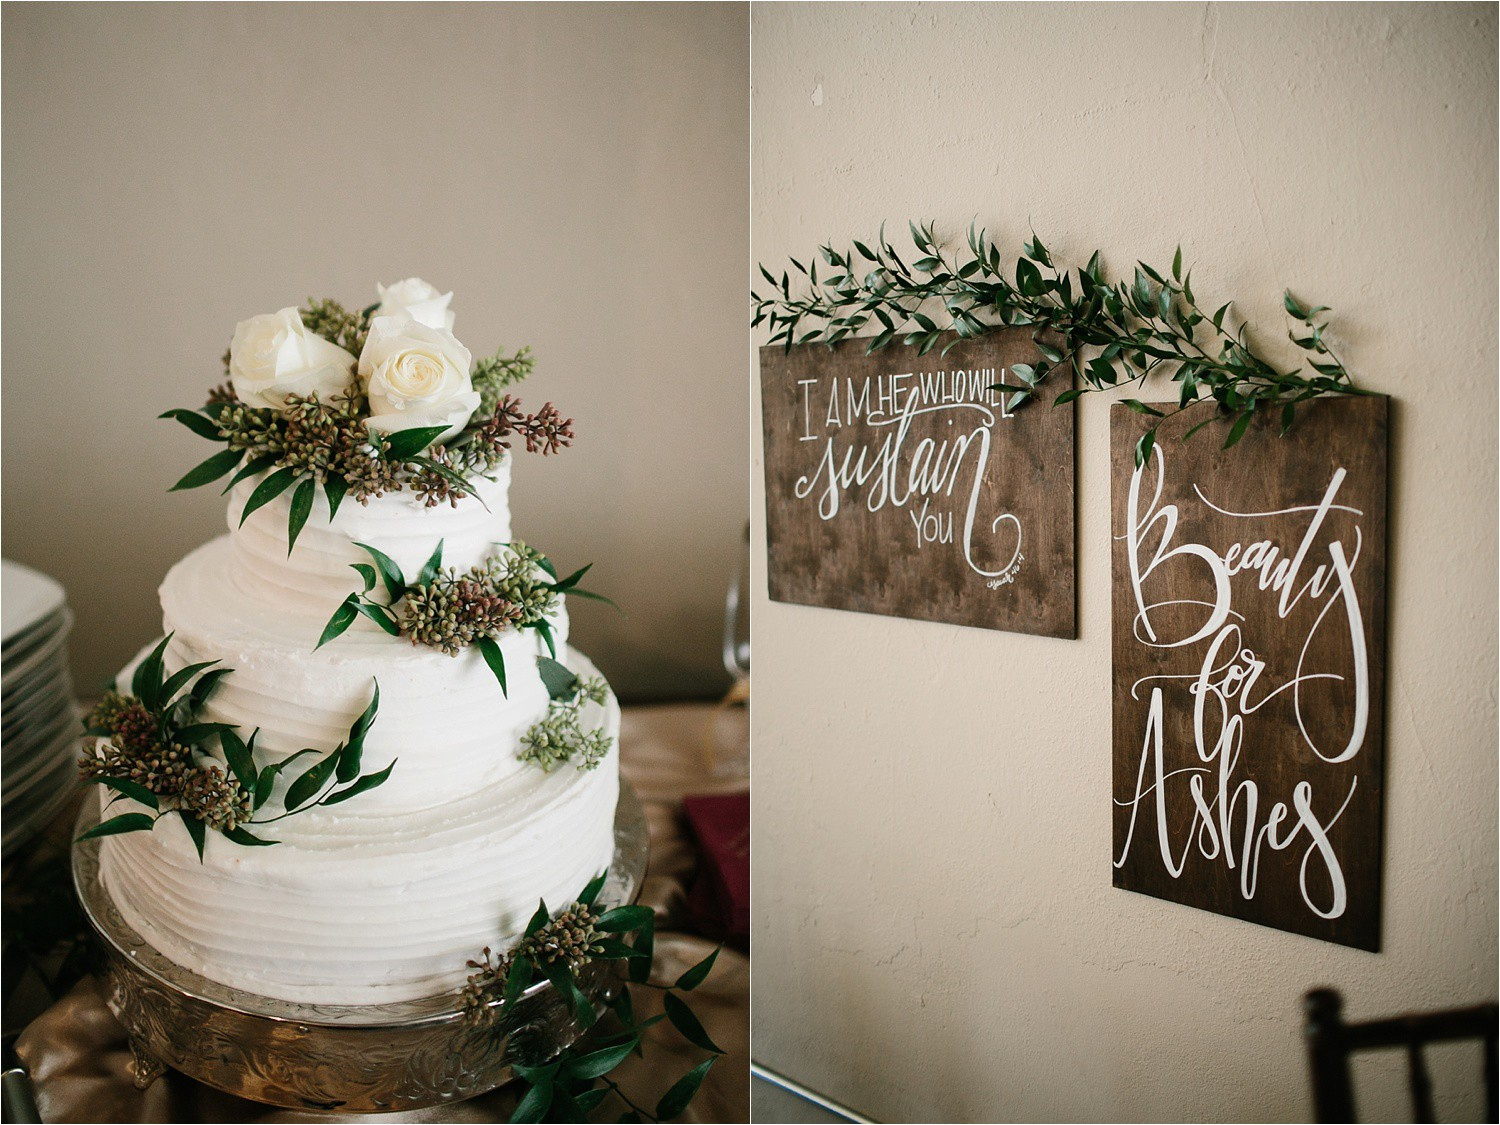 whittney-drew-__-an-intimate-wine-and-navy-wedding-in-an-industrial-venue-at-loft-123-in-paris-tx-by-north-texas-wedding-photographer-rachel-meagan-photography-_-010